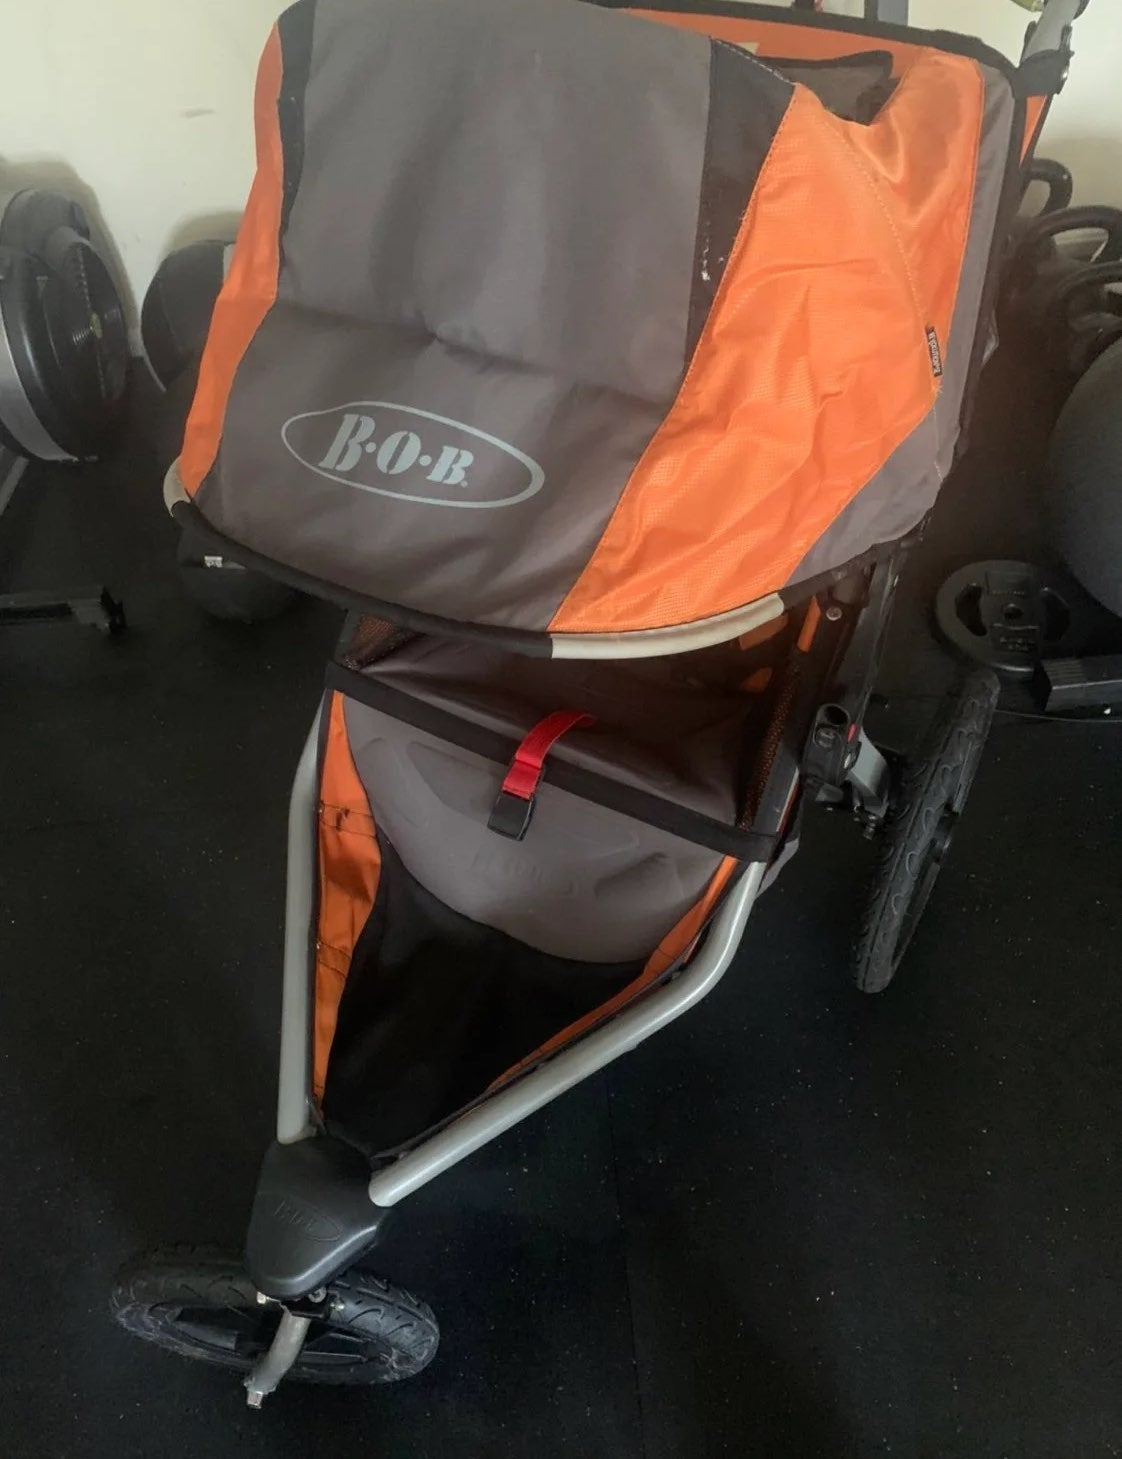 BOB STROLLER & parent console included!